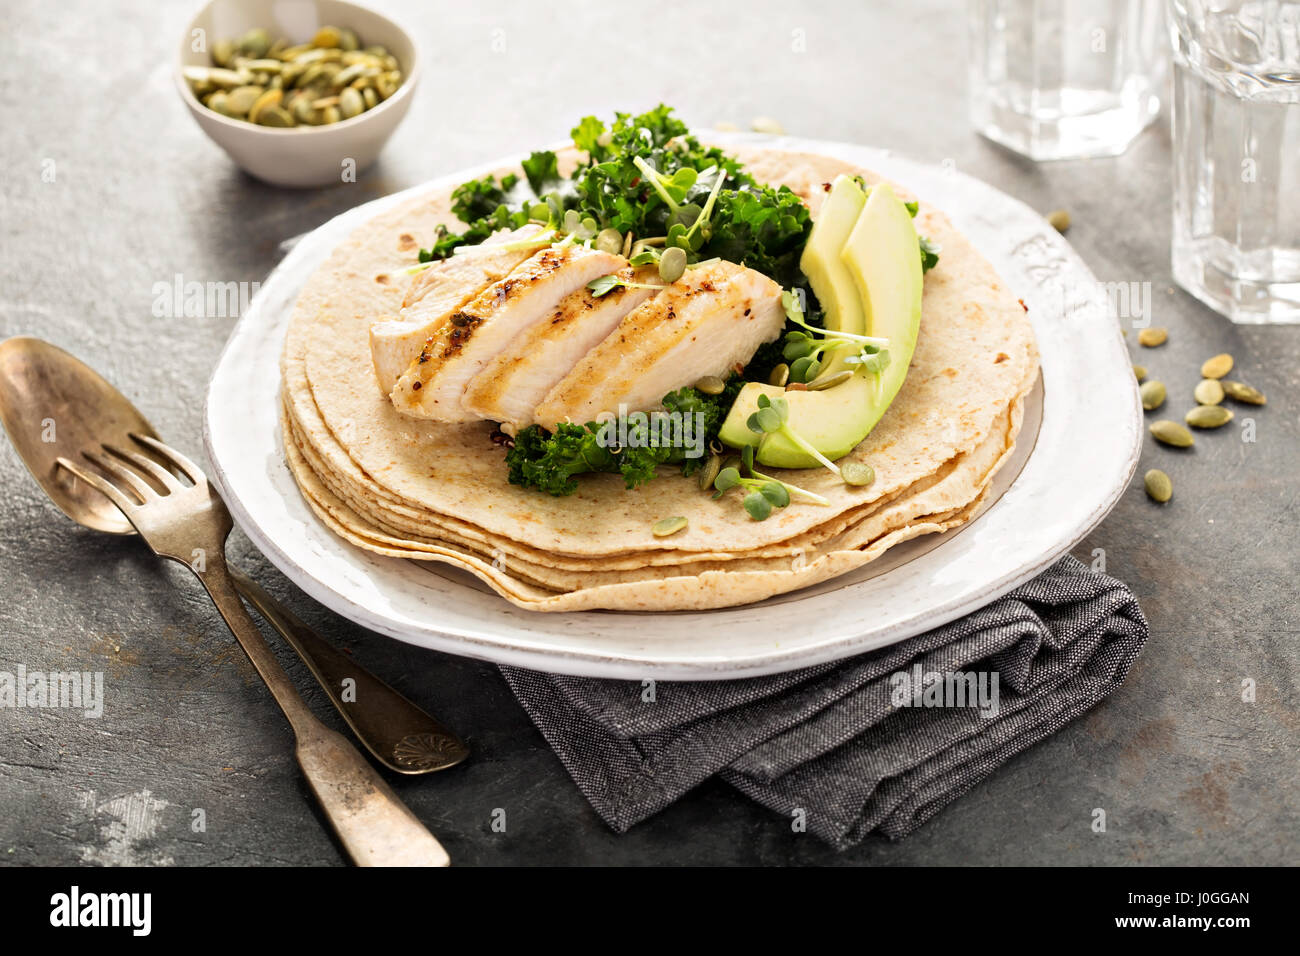 Making tacos with grilled chicken and avocado - Stock Image